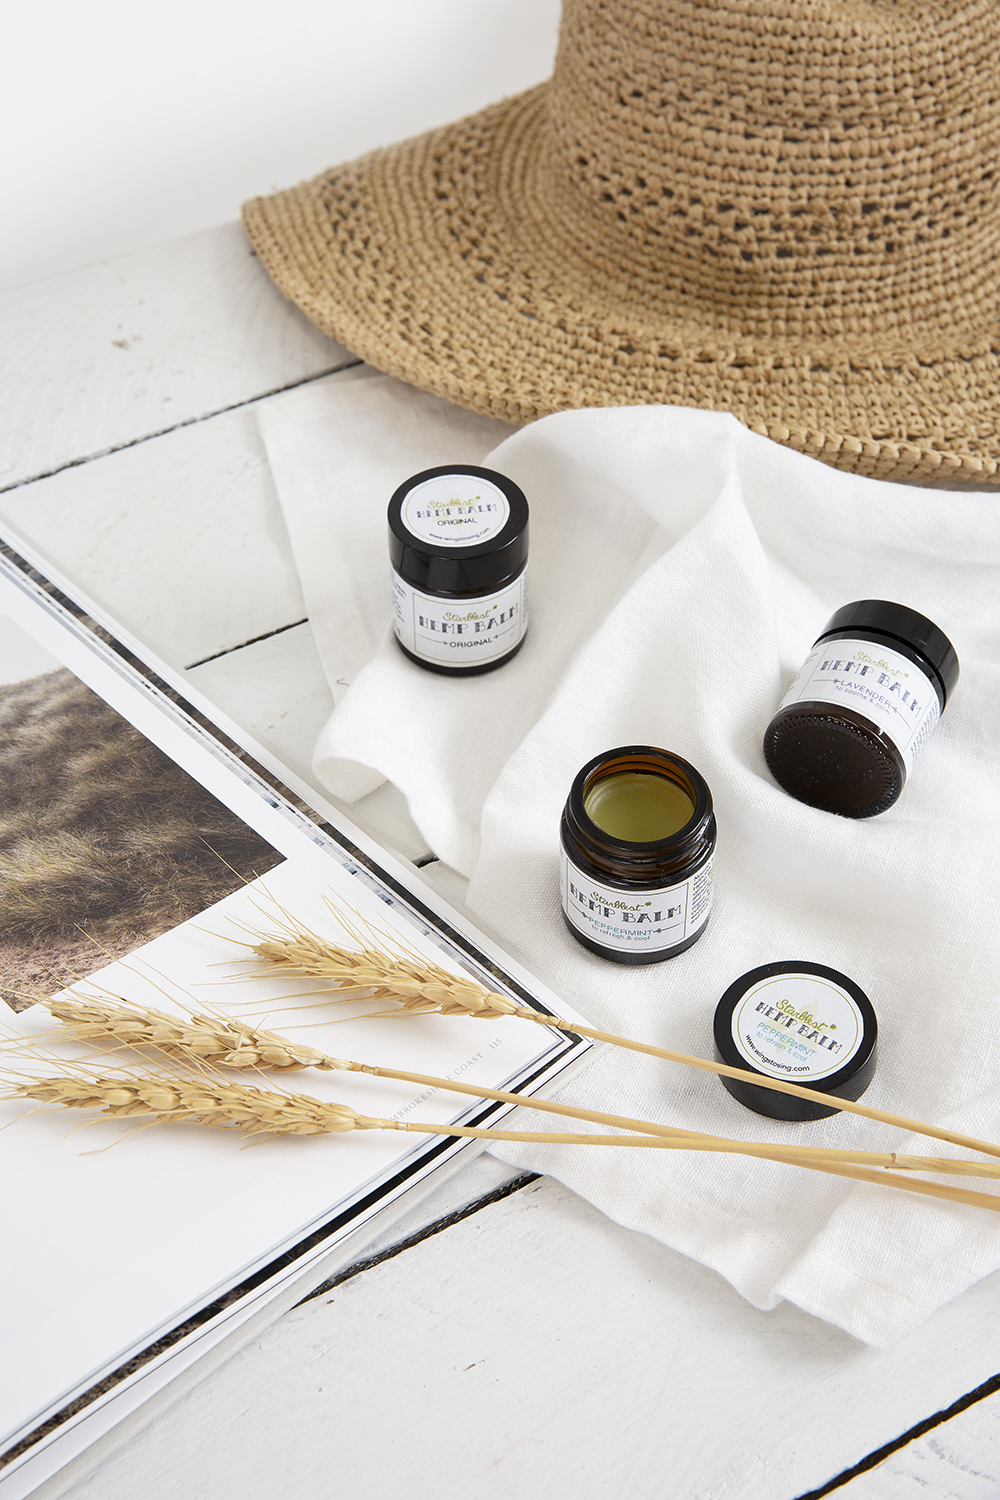 natural gifts, ethical gifts, handmade gifts, made in Australia gifts, hemp balms, hemp gifts, natural gifts, organic gifts, made in Australia gifts